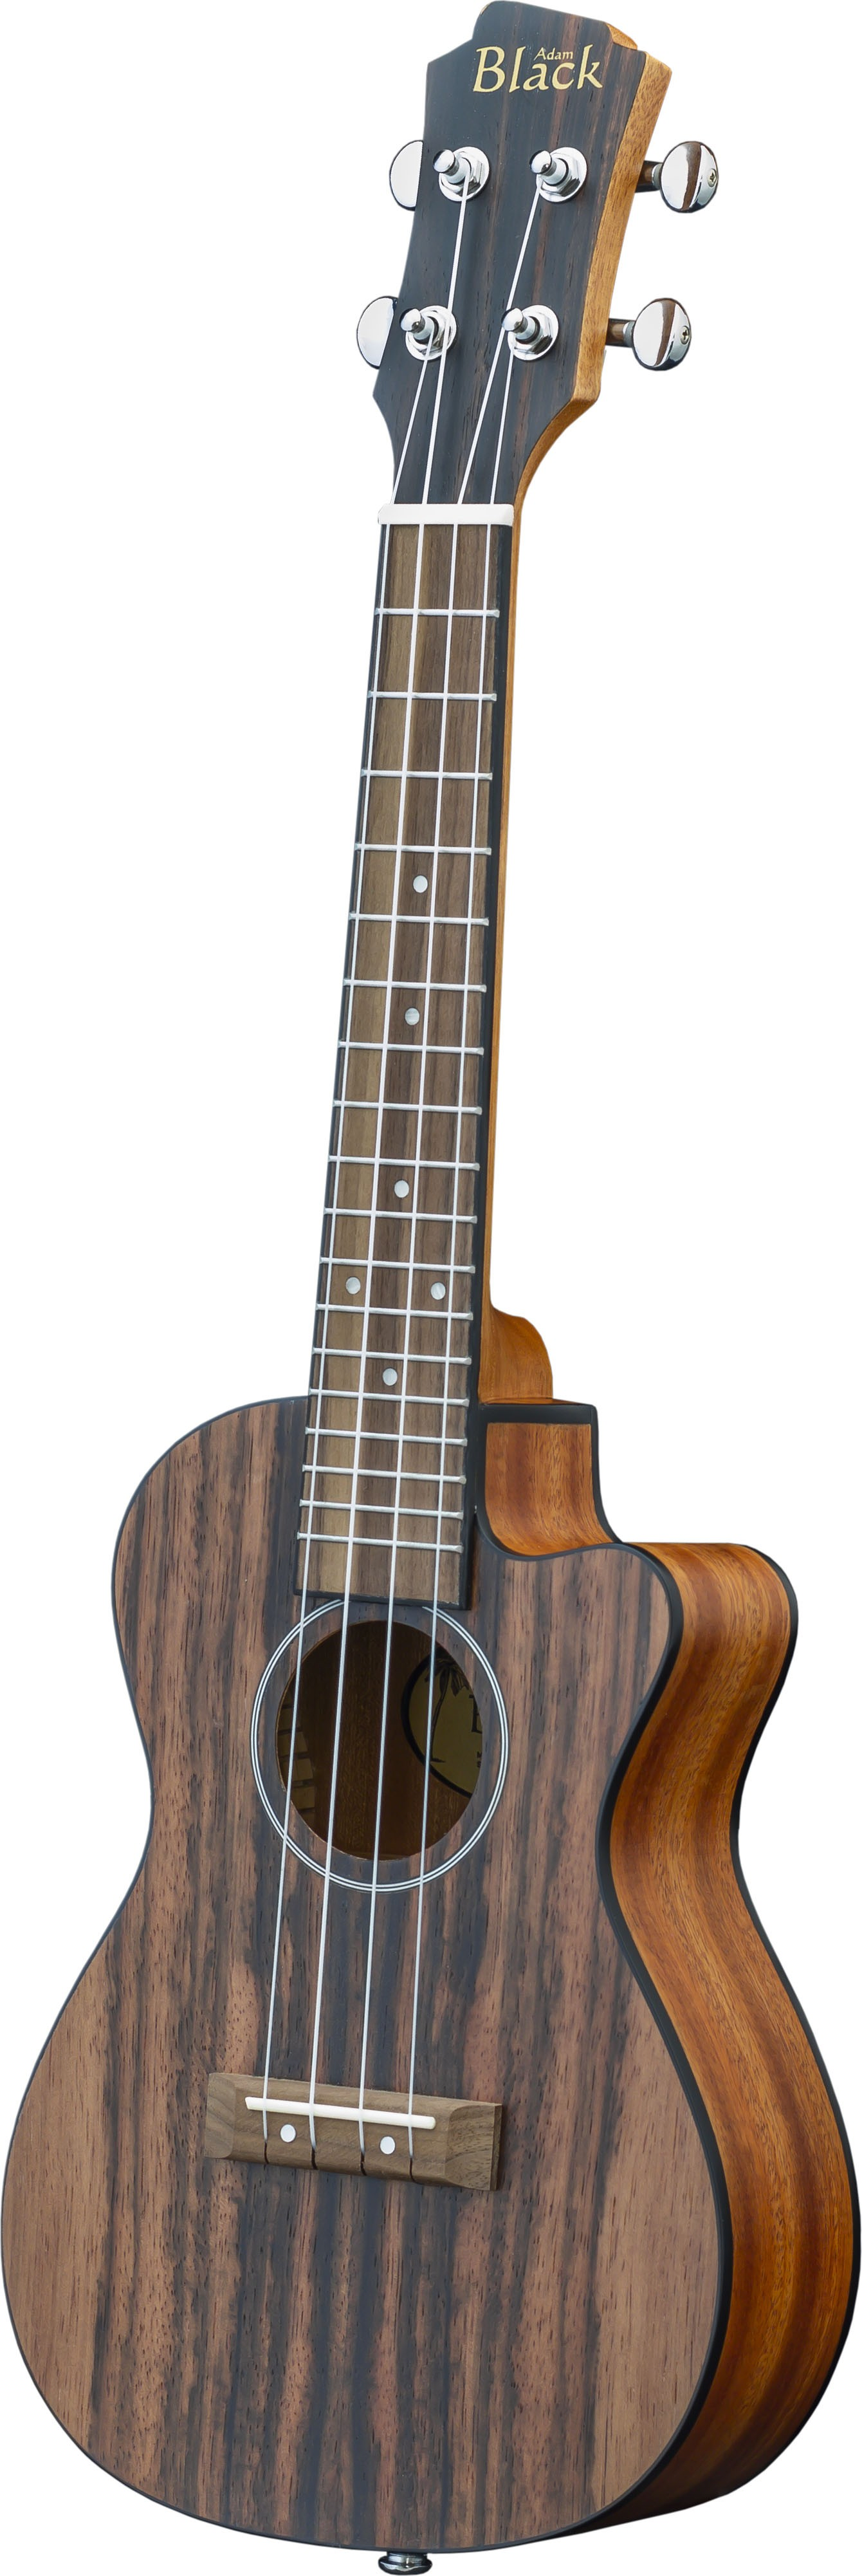 Adam Black Exotic Wood Series Concert CE Ukulele - Striped Ebony